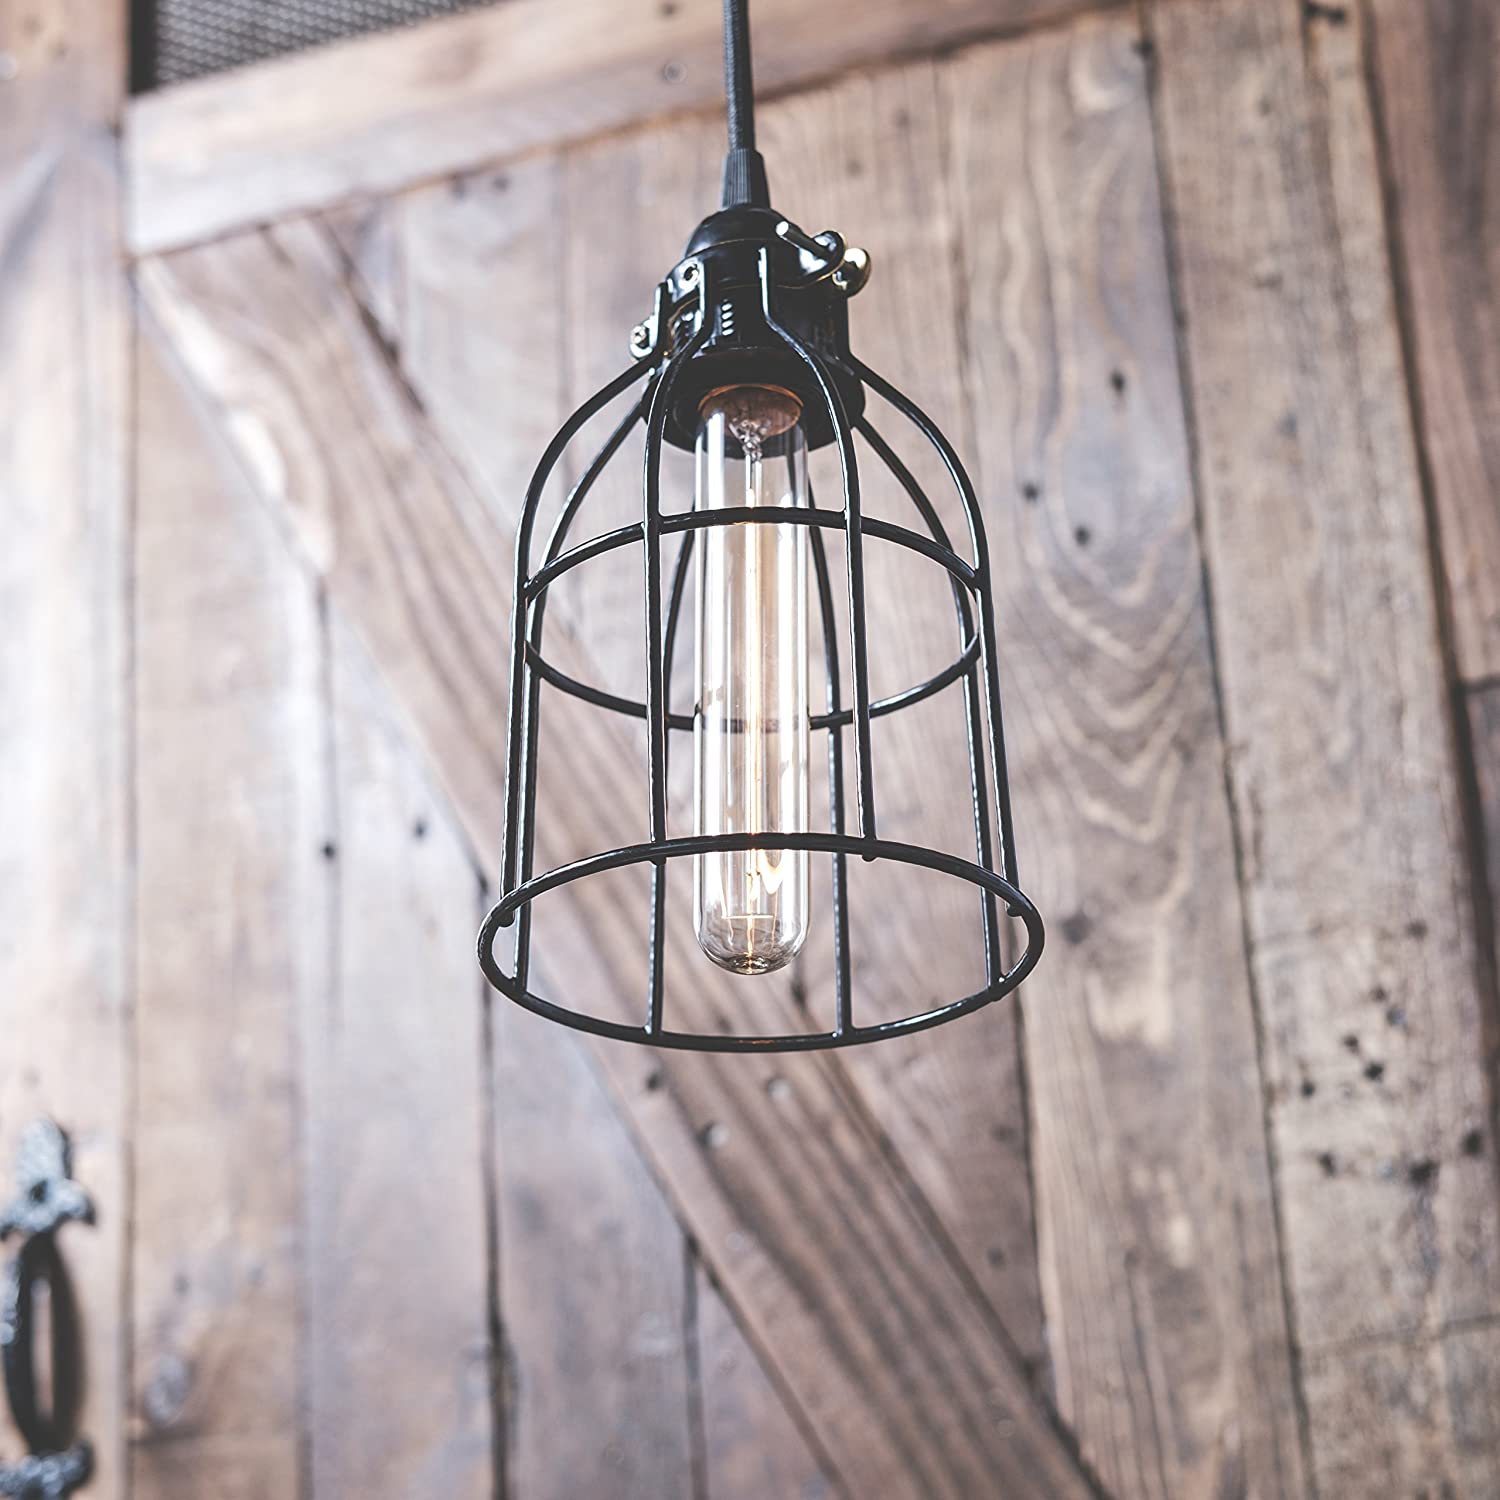 Industrial Vintage Style Metal Wire Curved Cage Pendant Ceiling Lamp Lamps Plus Lighting Decorative Electrical Wiring Light Fixture Set With 15 Toggle Switch Black Plug In Cord And Edison Tube Bulb